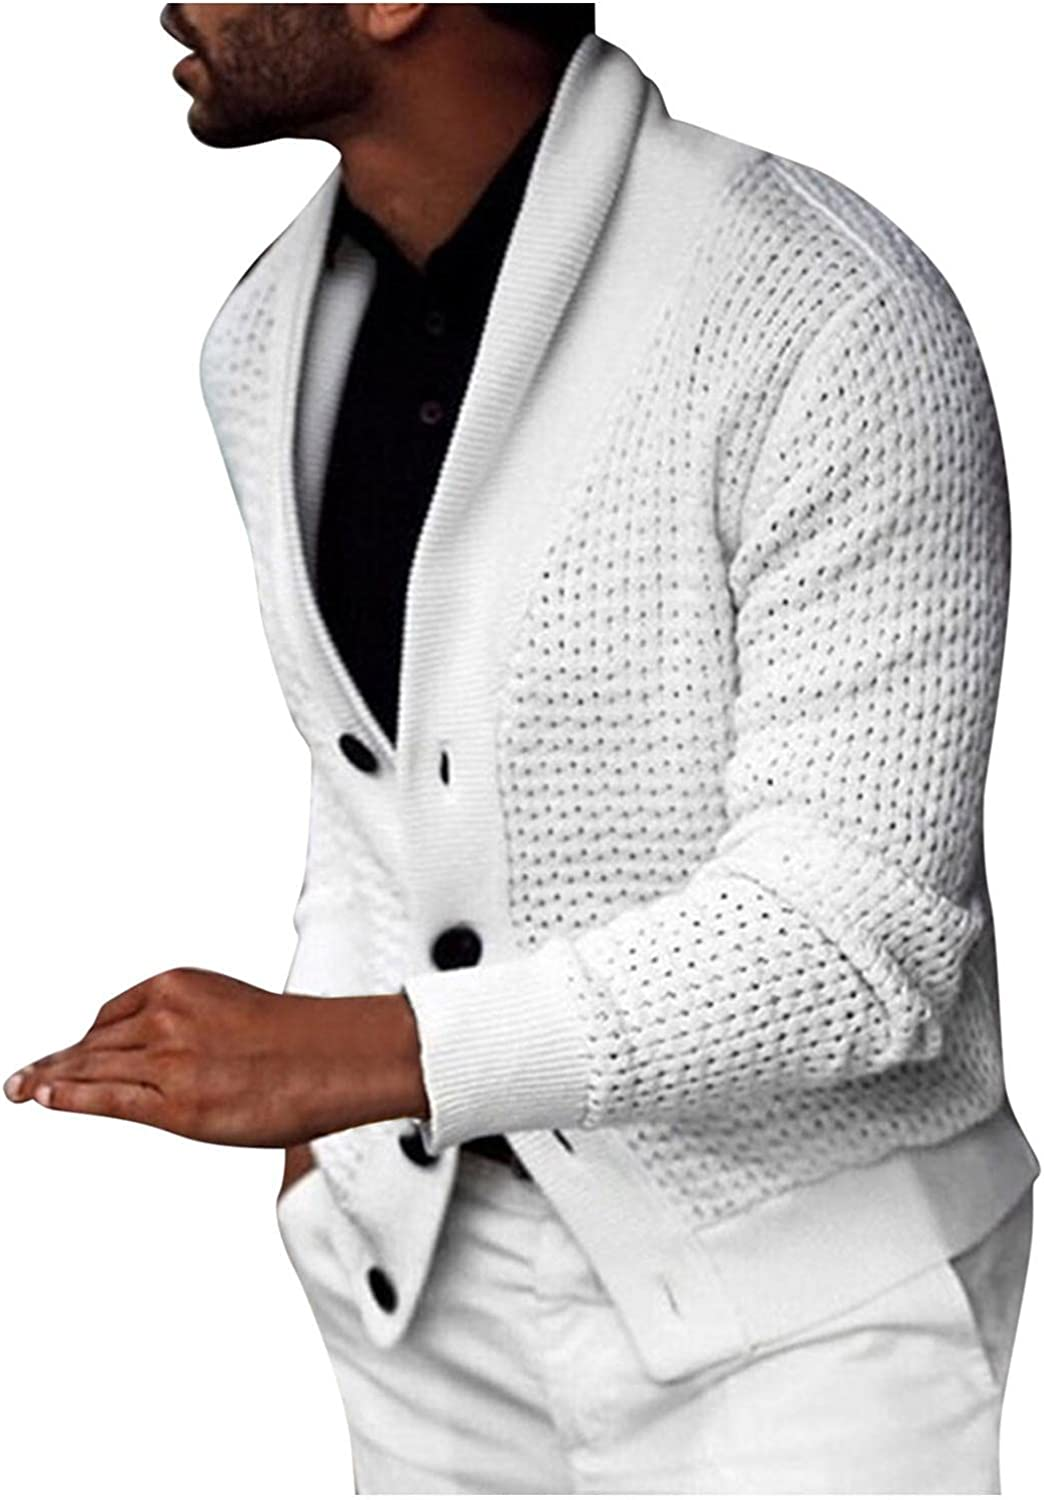 Men's Cable Knit Cardigan Sweater Casual Long Sleeve Slim Fit Solid Color Lapel Button Down Sweater Coats Blouse Shirts